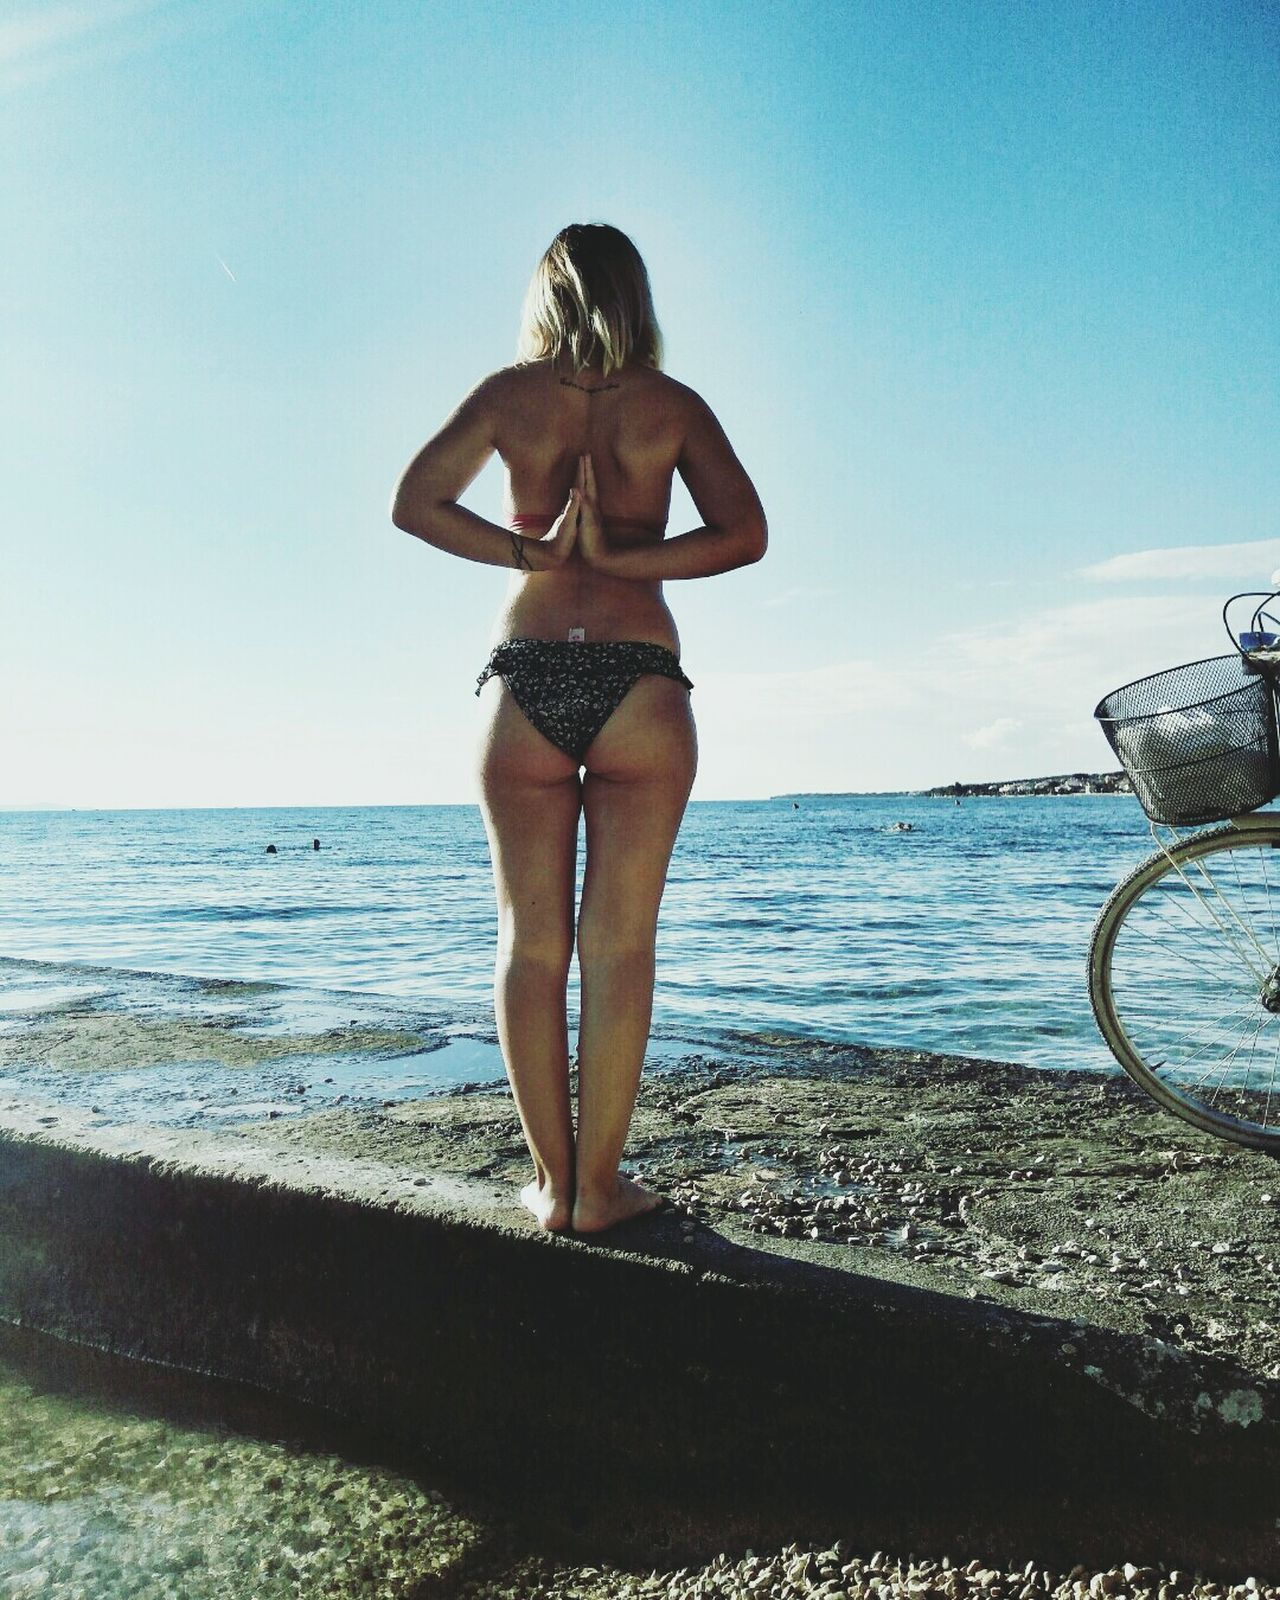 Beach Sea One Woman Only Bikini Sunlight Horizon Over Water Summer Outdoors Vacations Rear View Sky Full Length Water Girl Girls With Tattoos